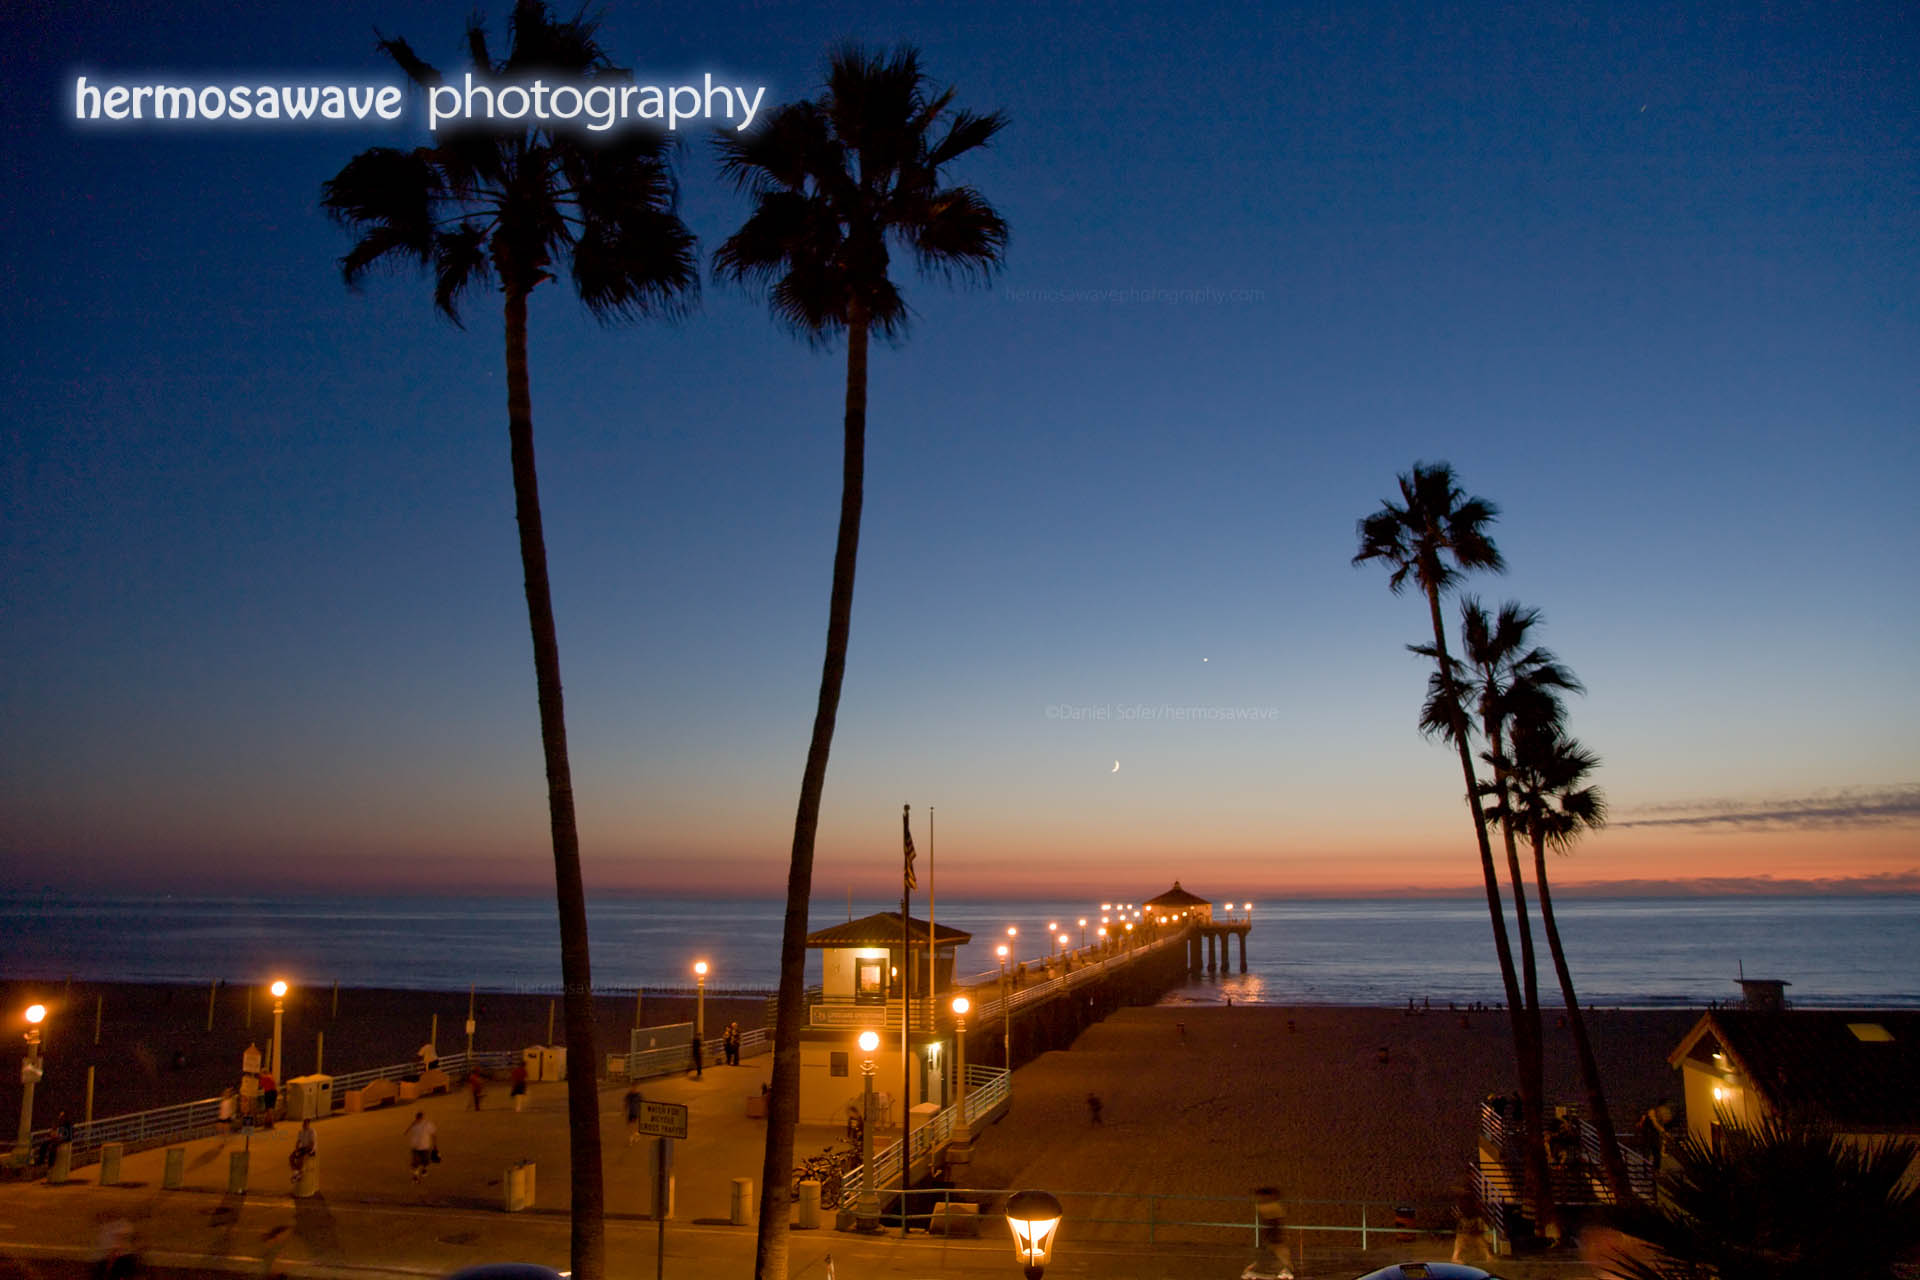 Two Palms and a Pier